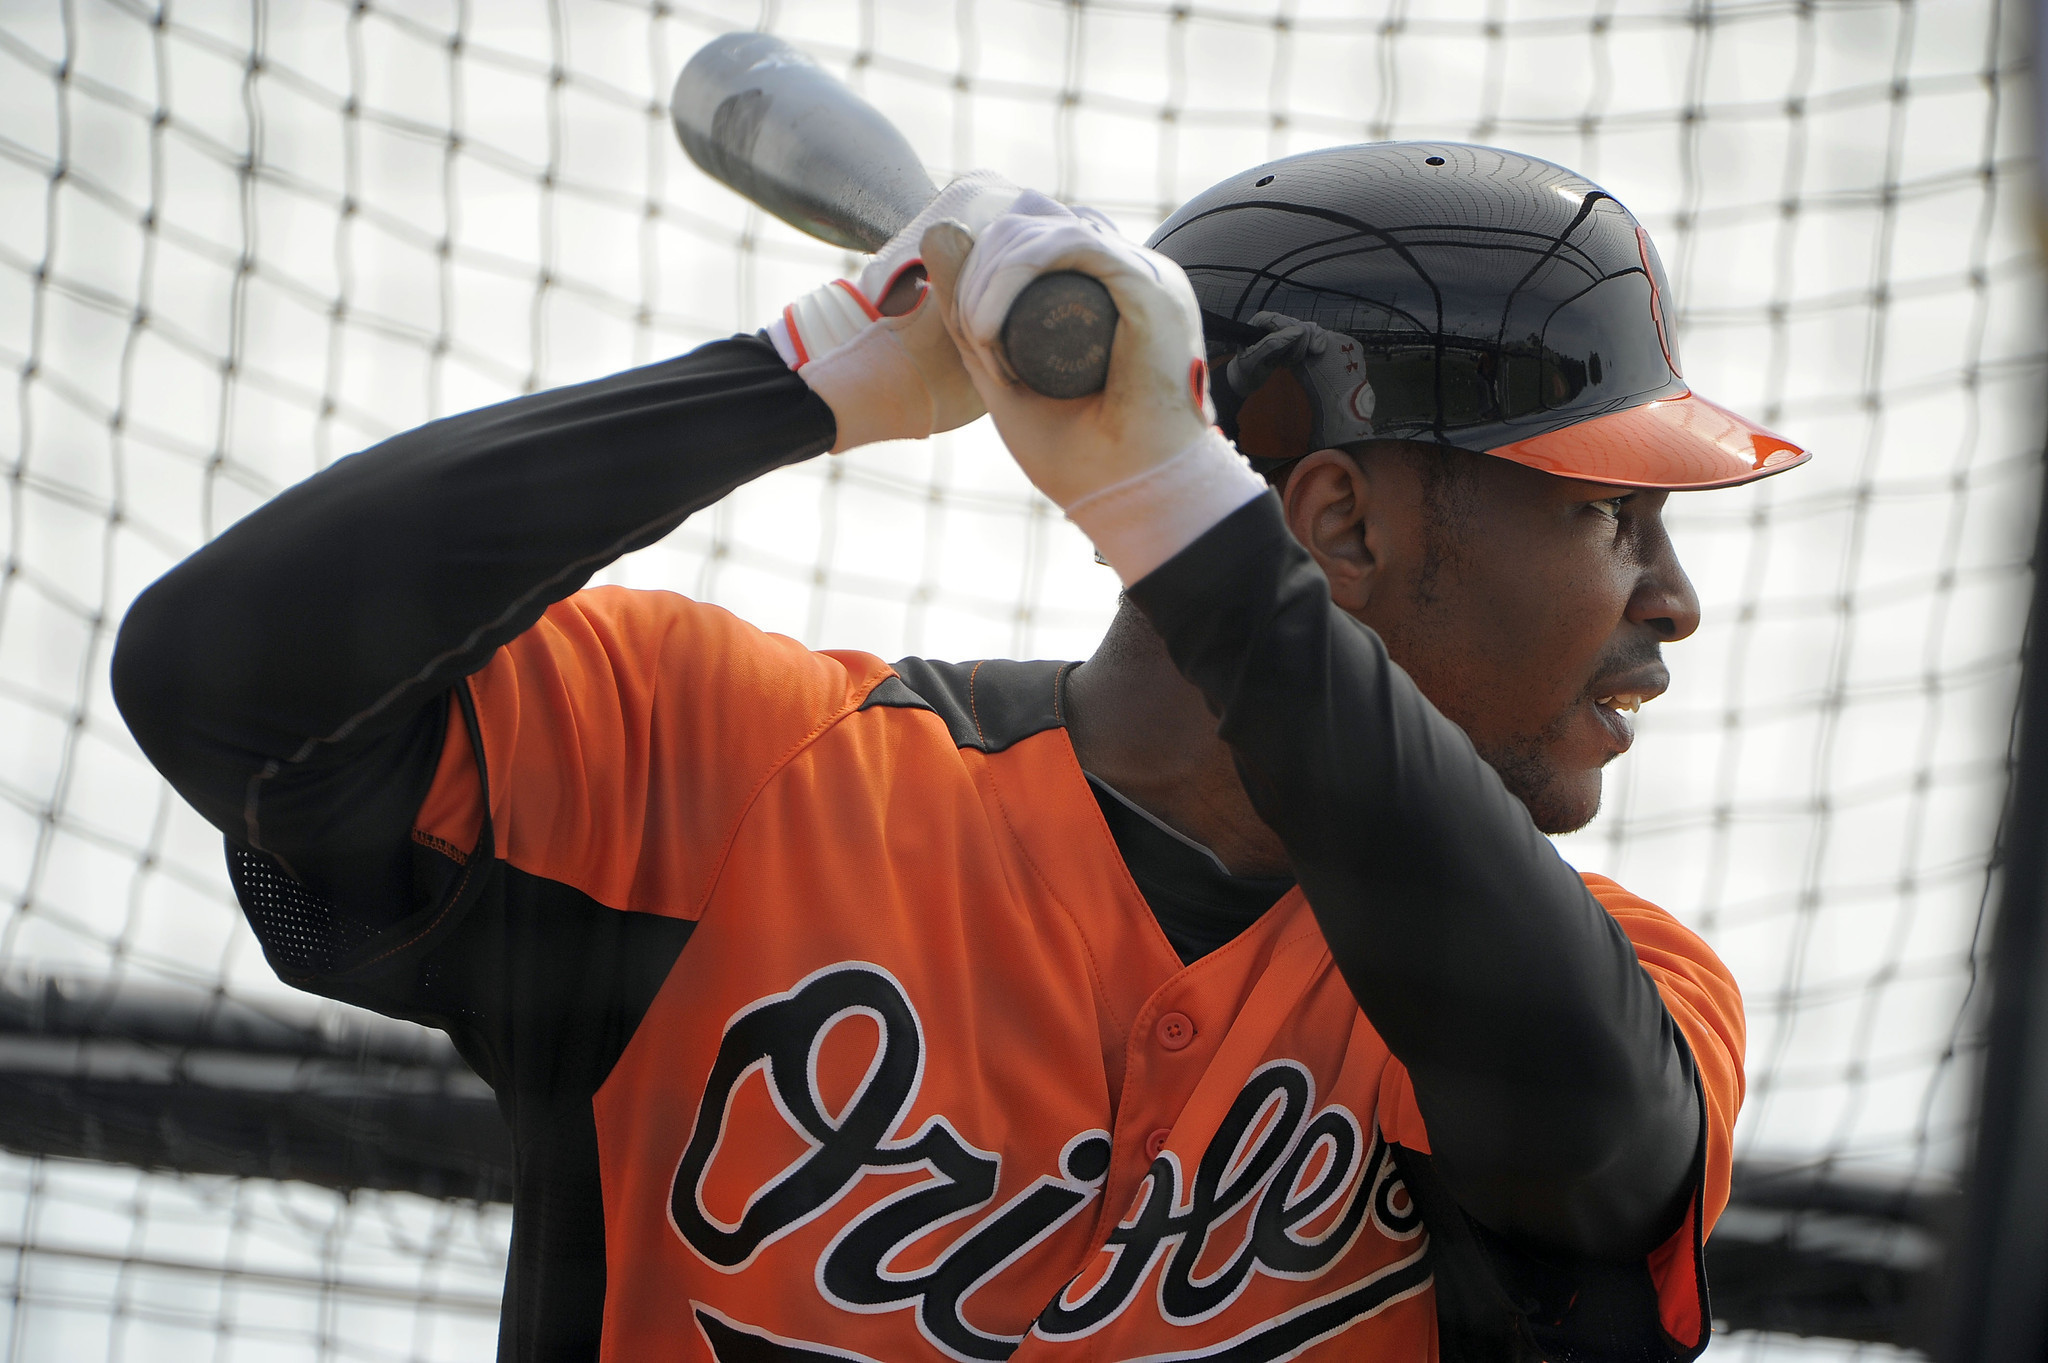 Bal-former-orioles-outfielder-l-j-hoes-suspended-50-games-for-second-failed-drug-test-20170215